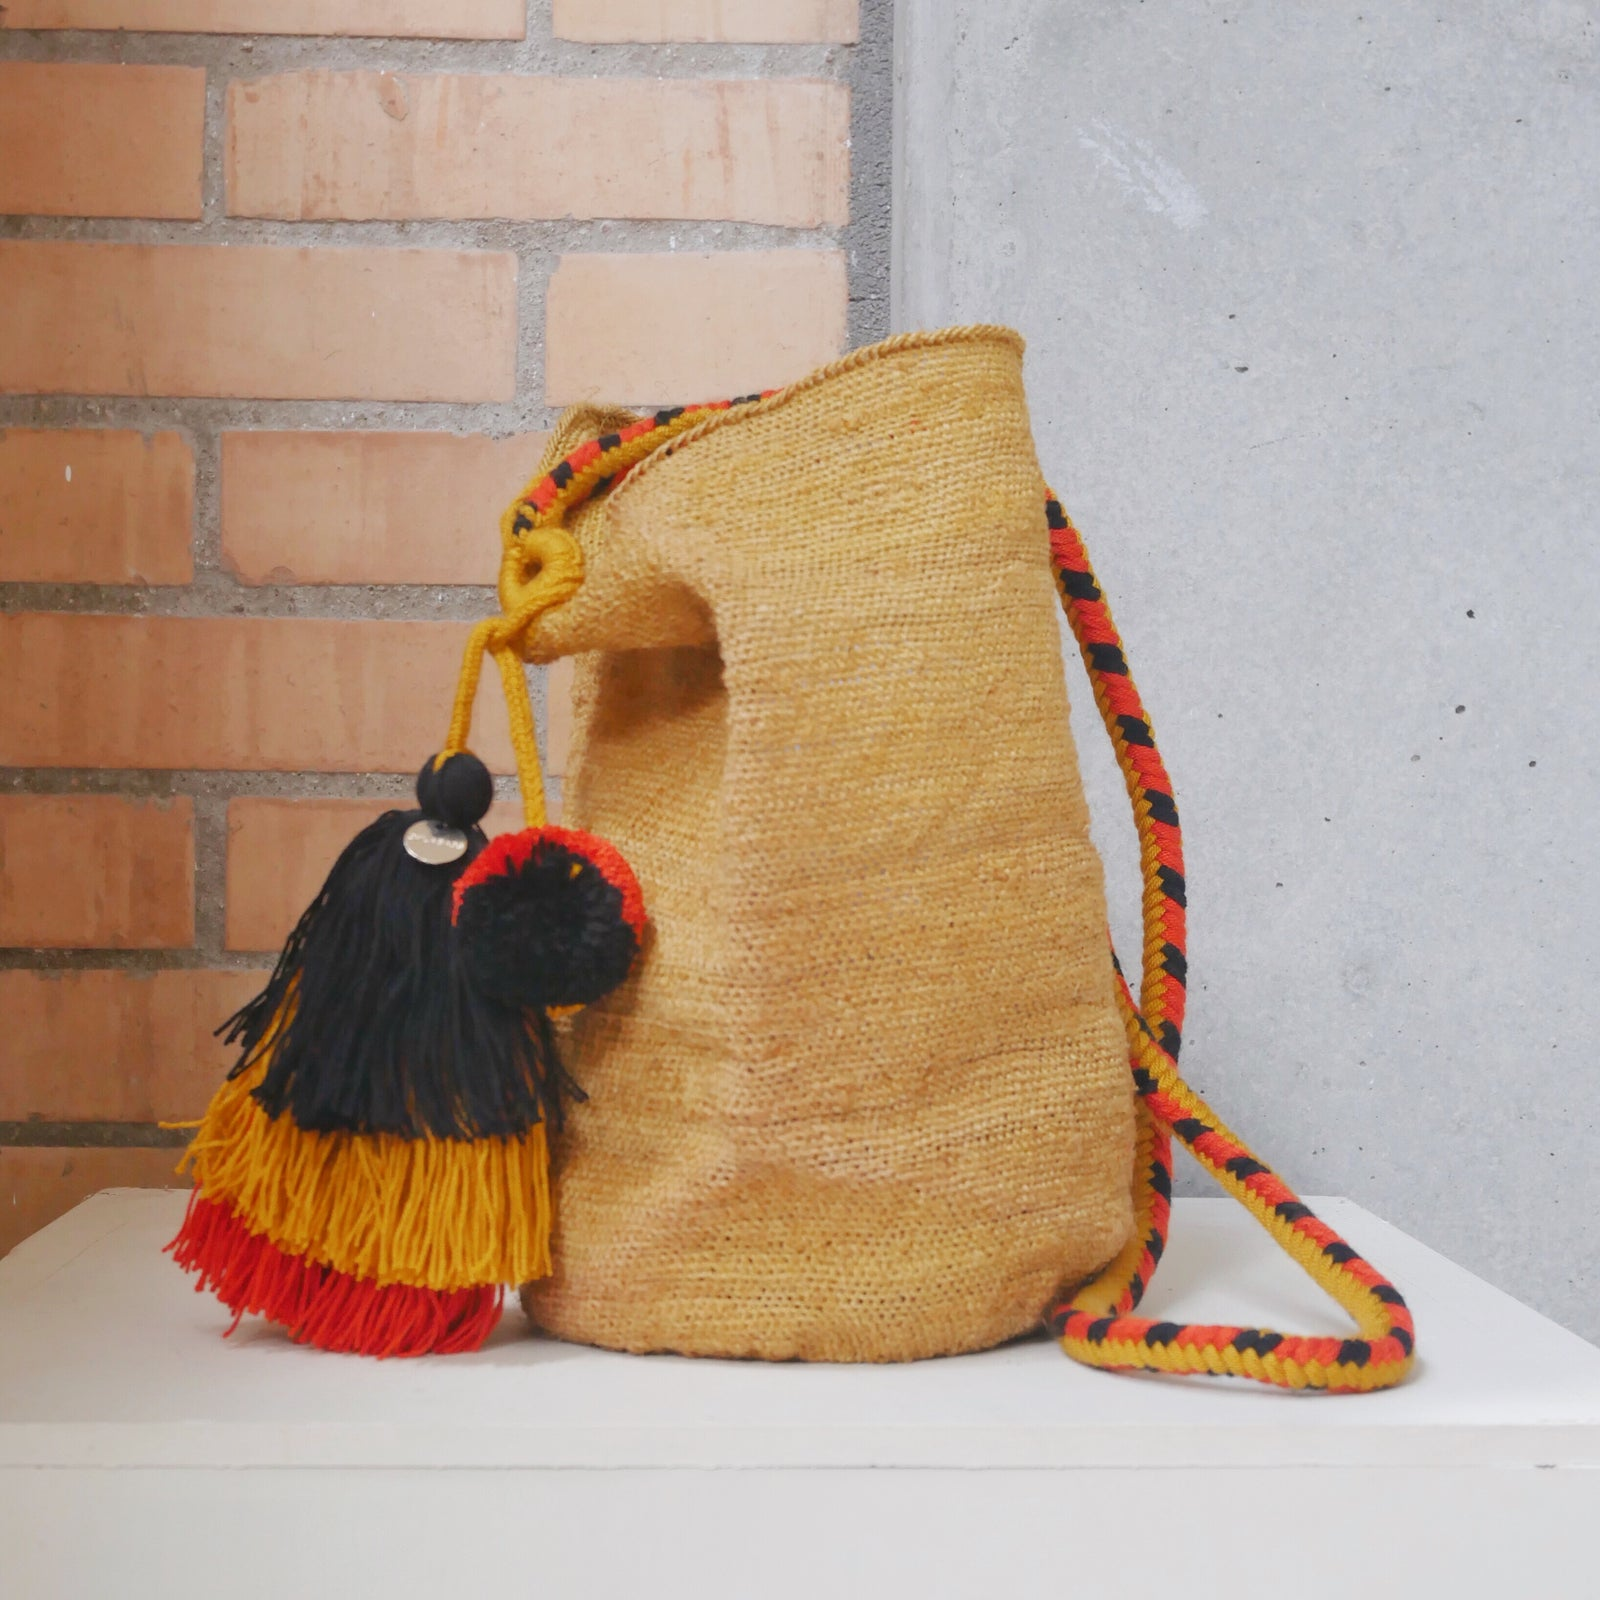 Fique Bag with Wayuu Accessory